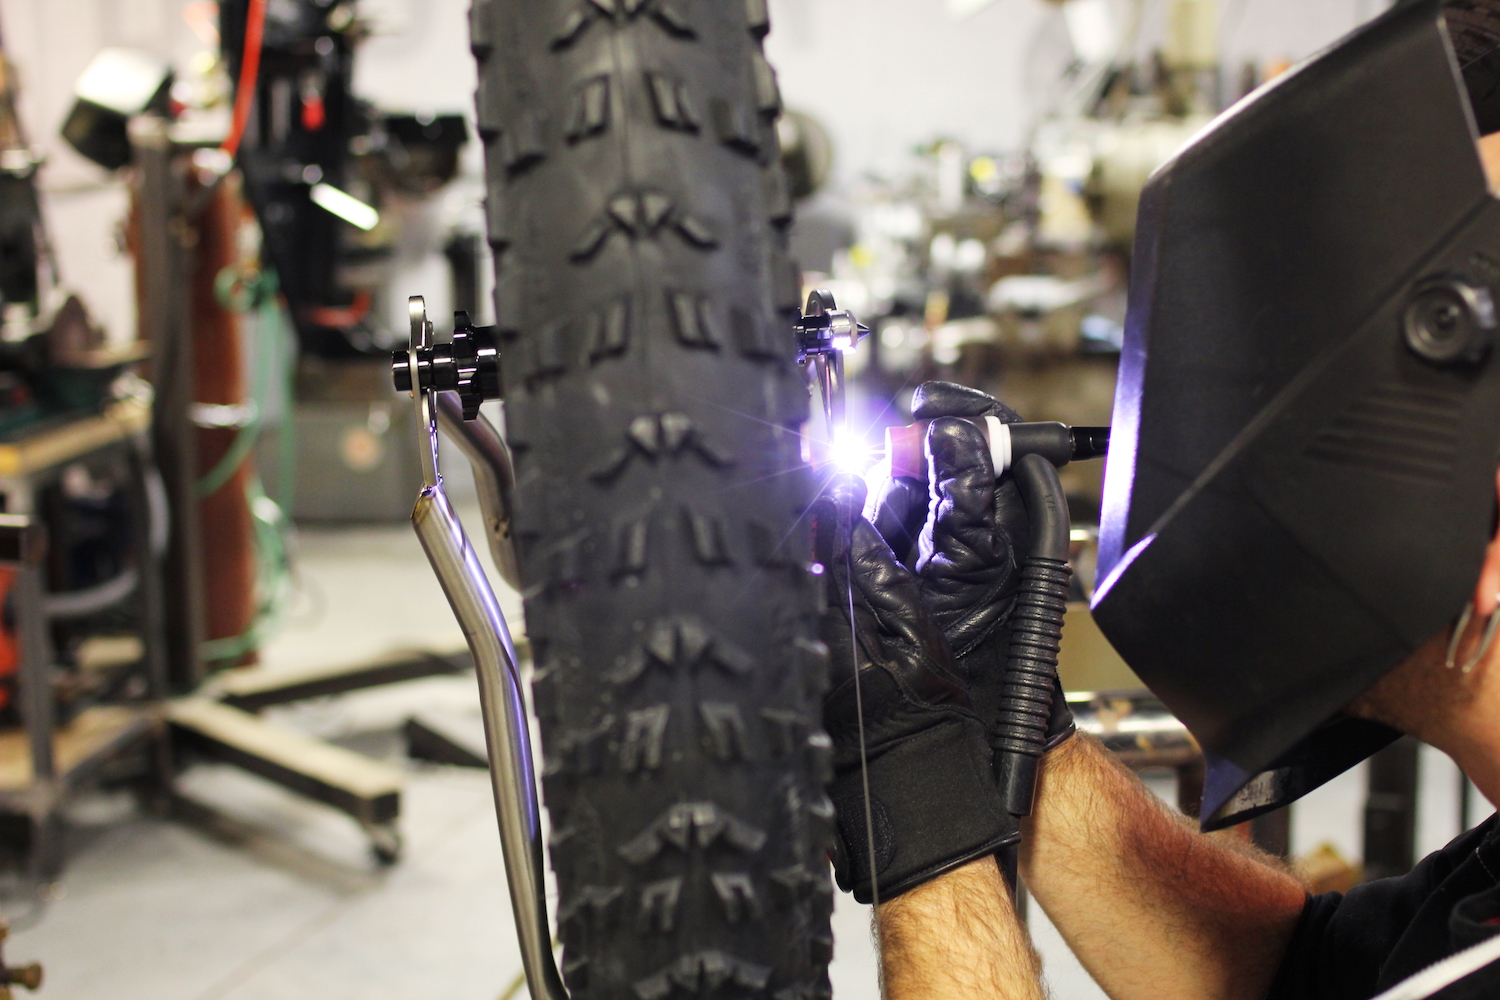 Attention to detail is the pride and joy of the team at Firefly Bicycles.